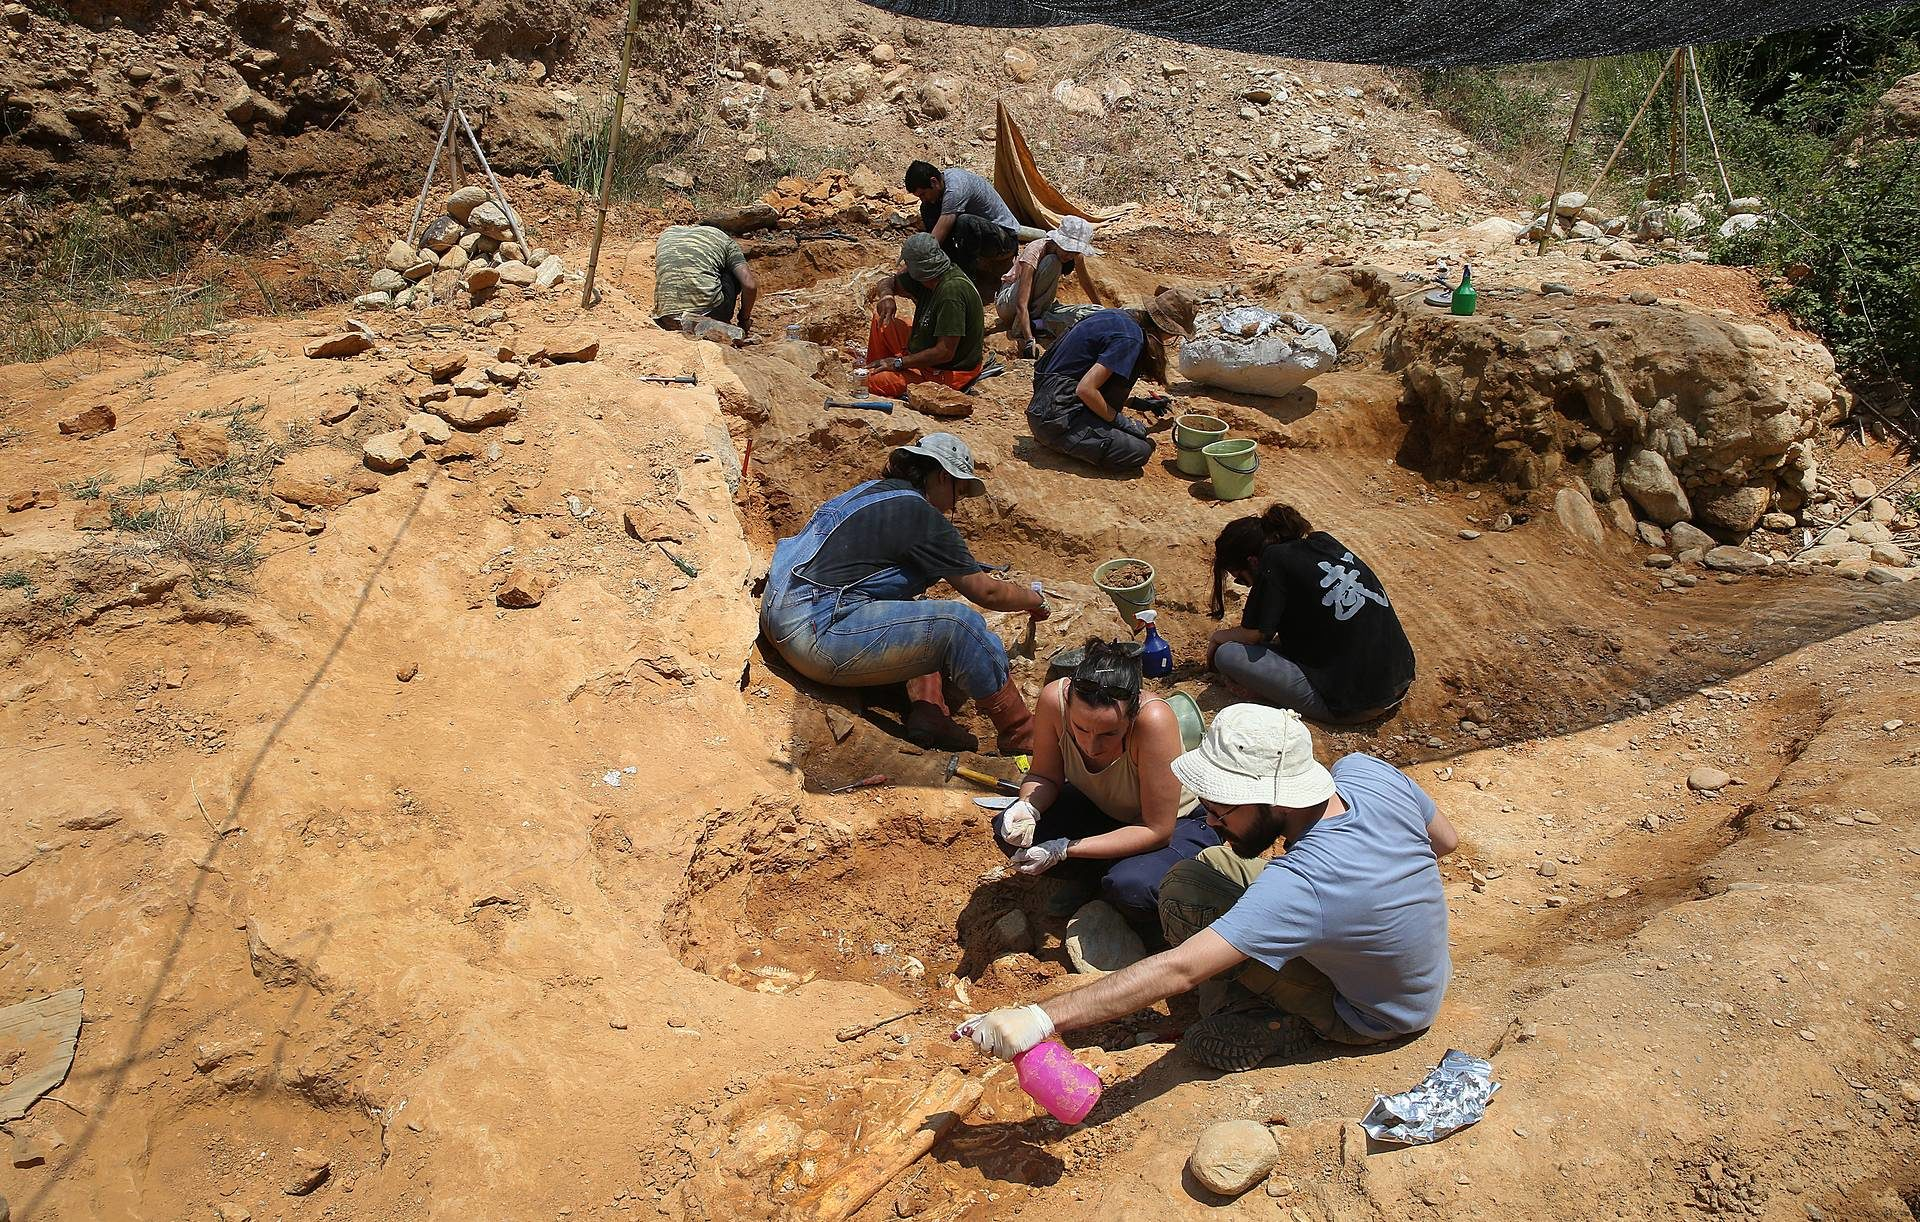 palaeontologists-are-working-on-an-excavation-in-a-river-bed-in-pikermi-attica